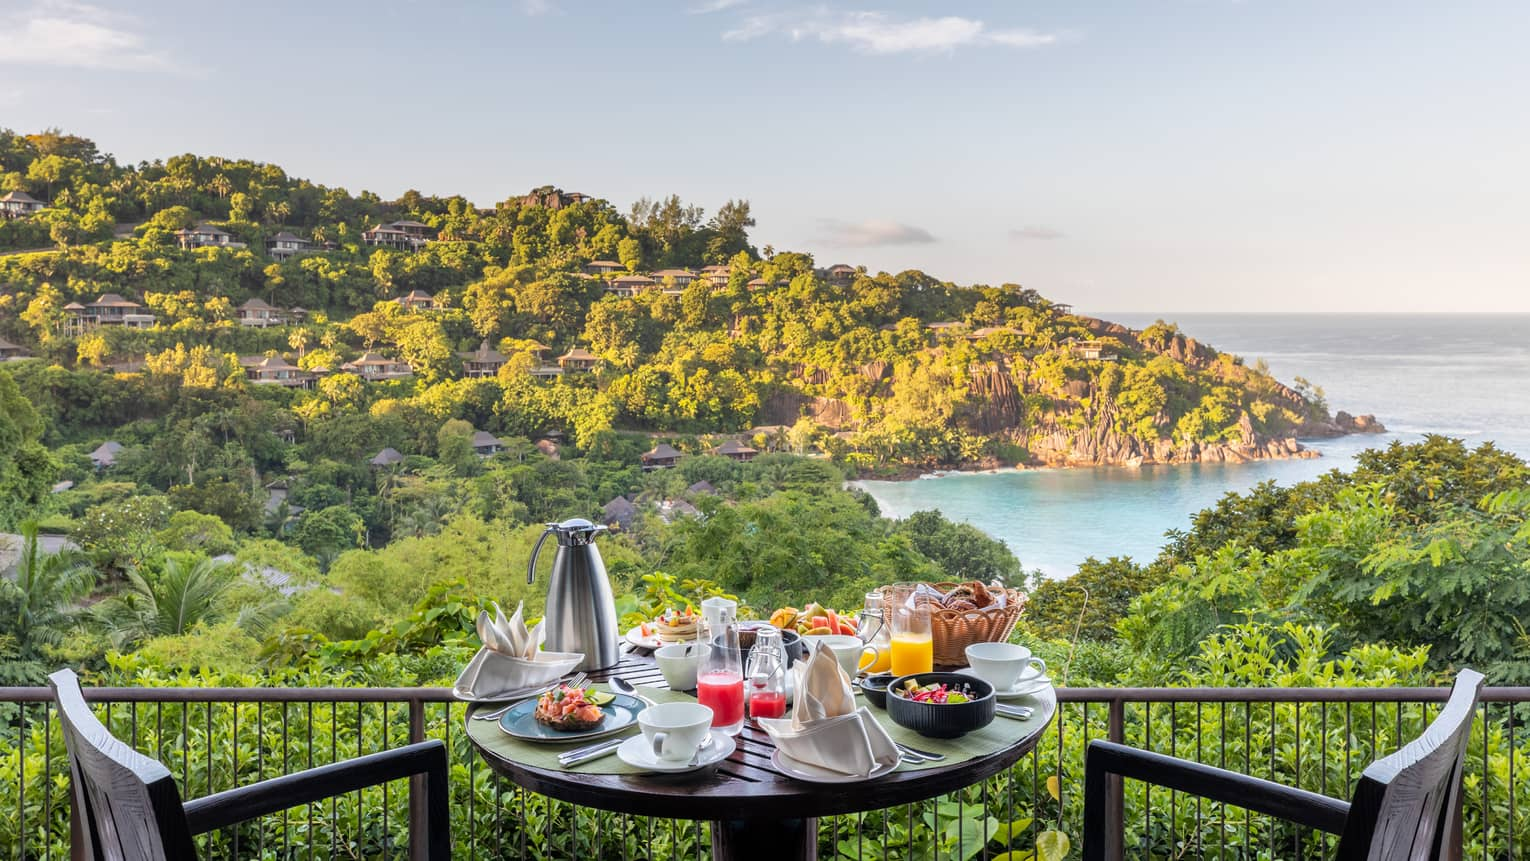 Bistro table and chairs with breakfast dishes and carafe, overlooking tropical hillsides and ocean